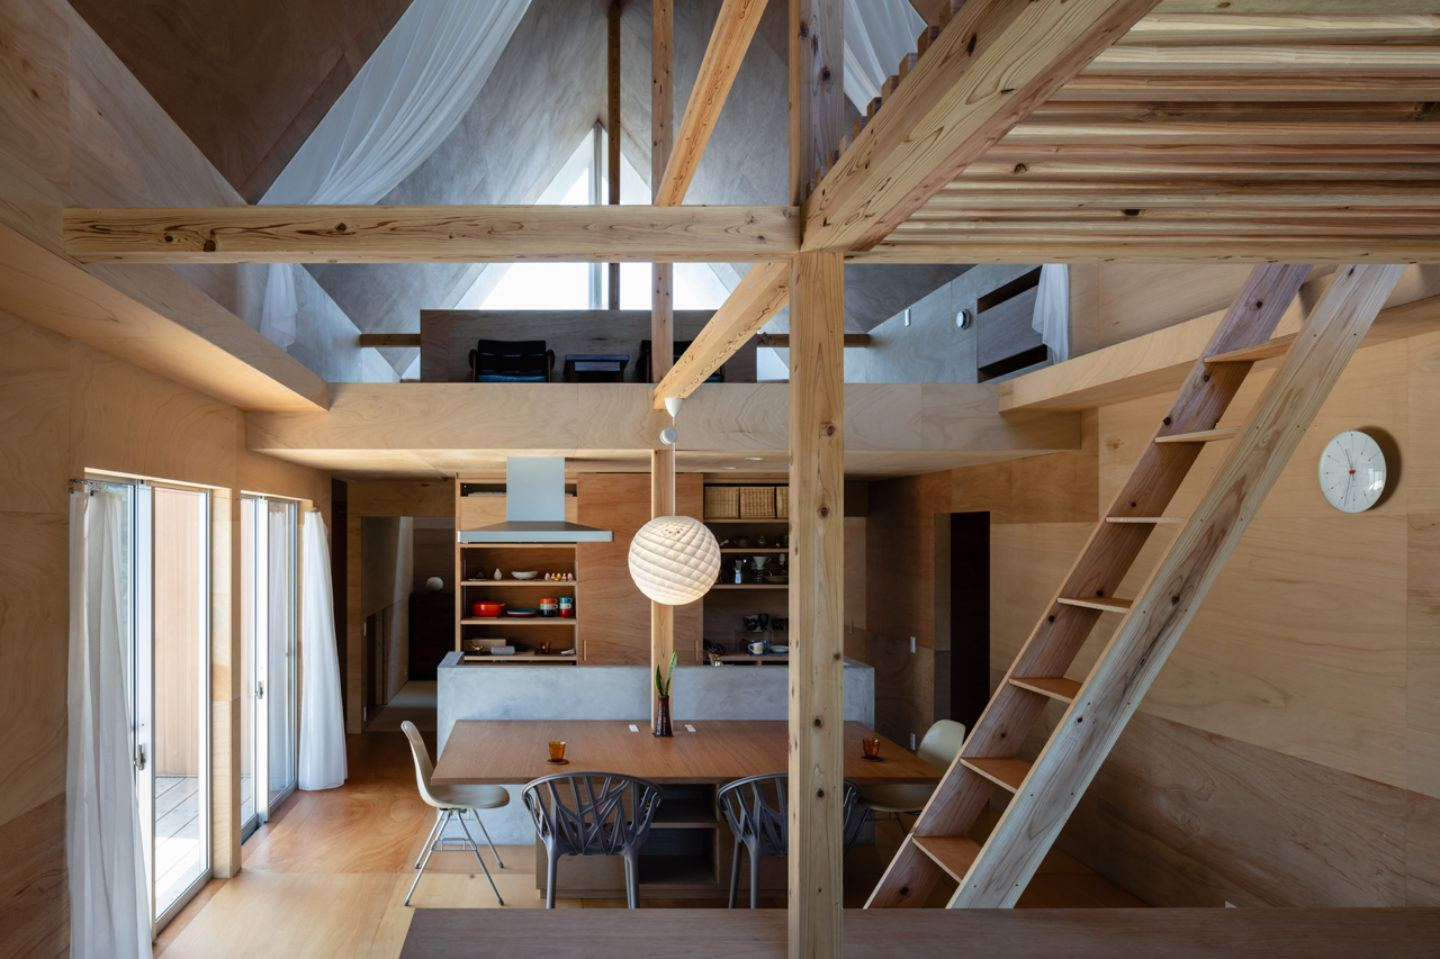 IGNANT-Architecture-YN-Architects-Masumitsu-House-5